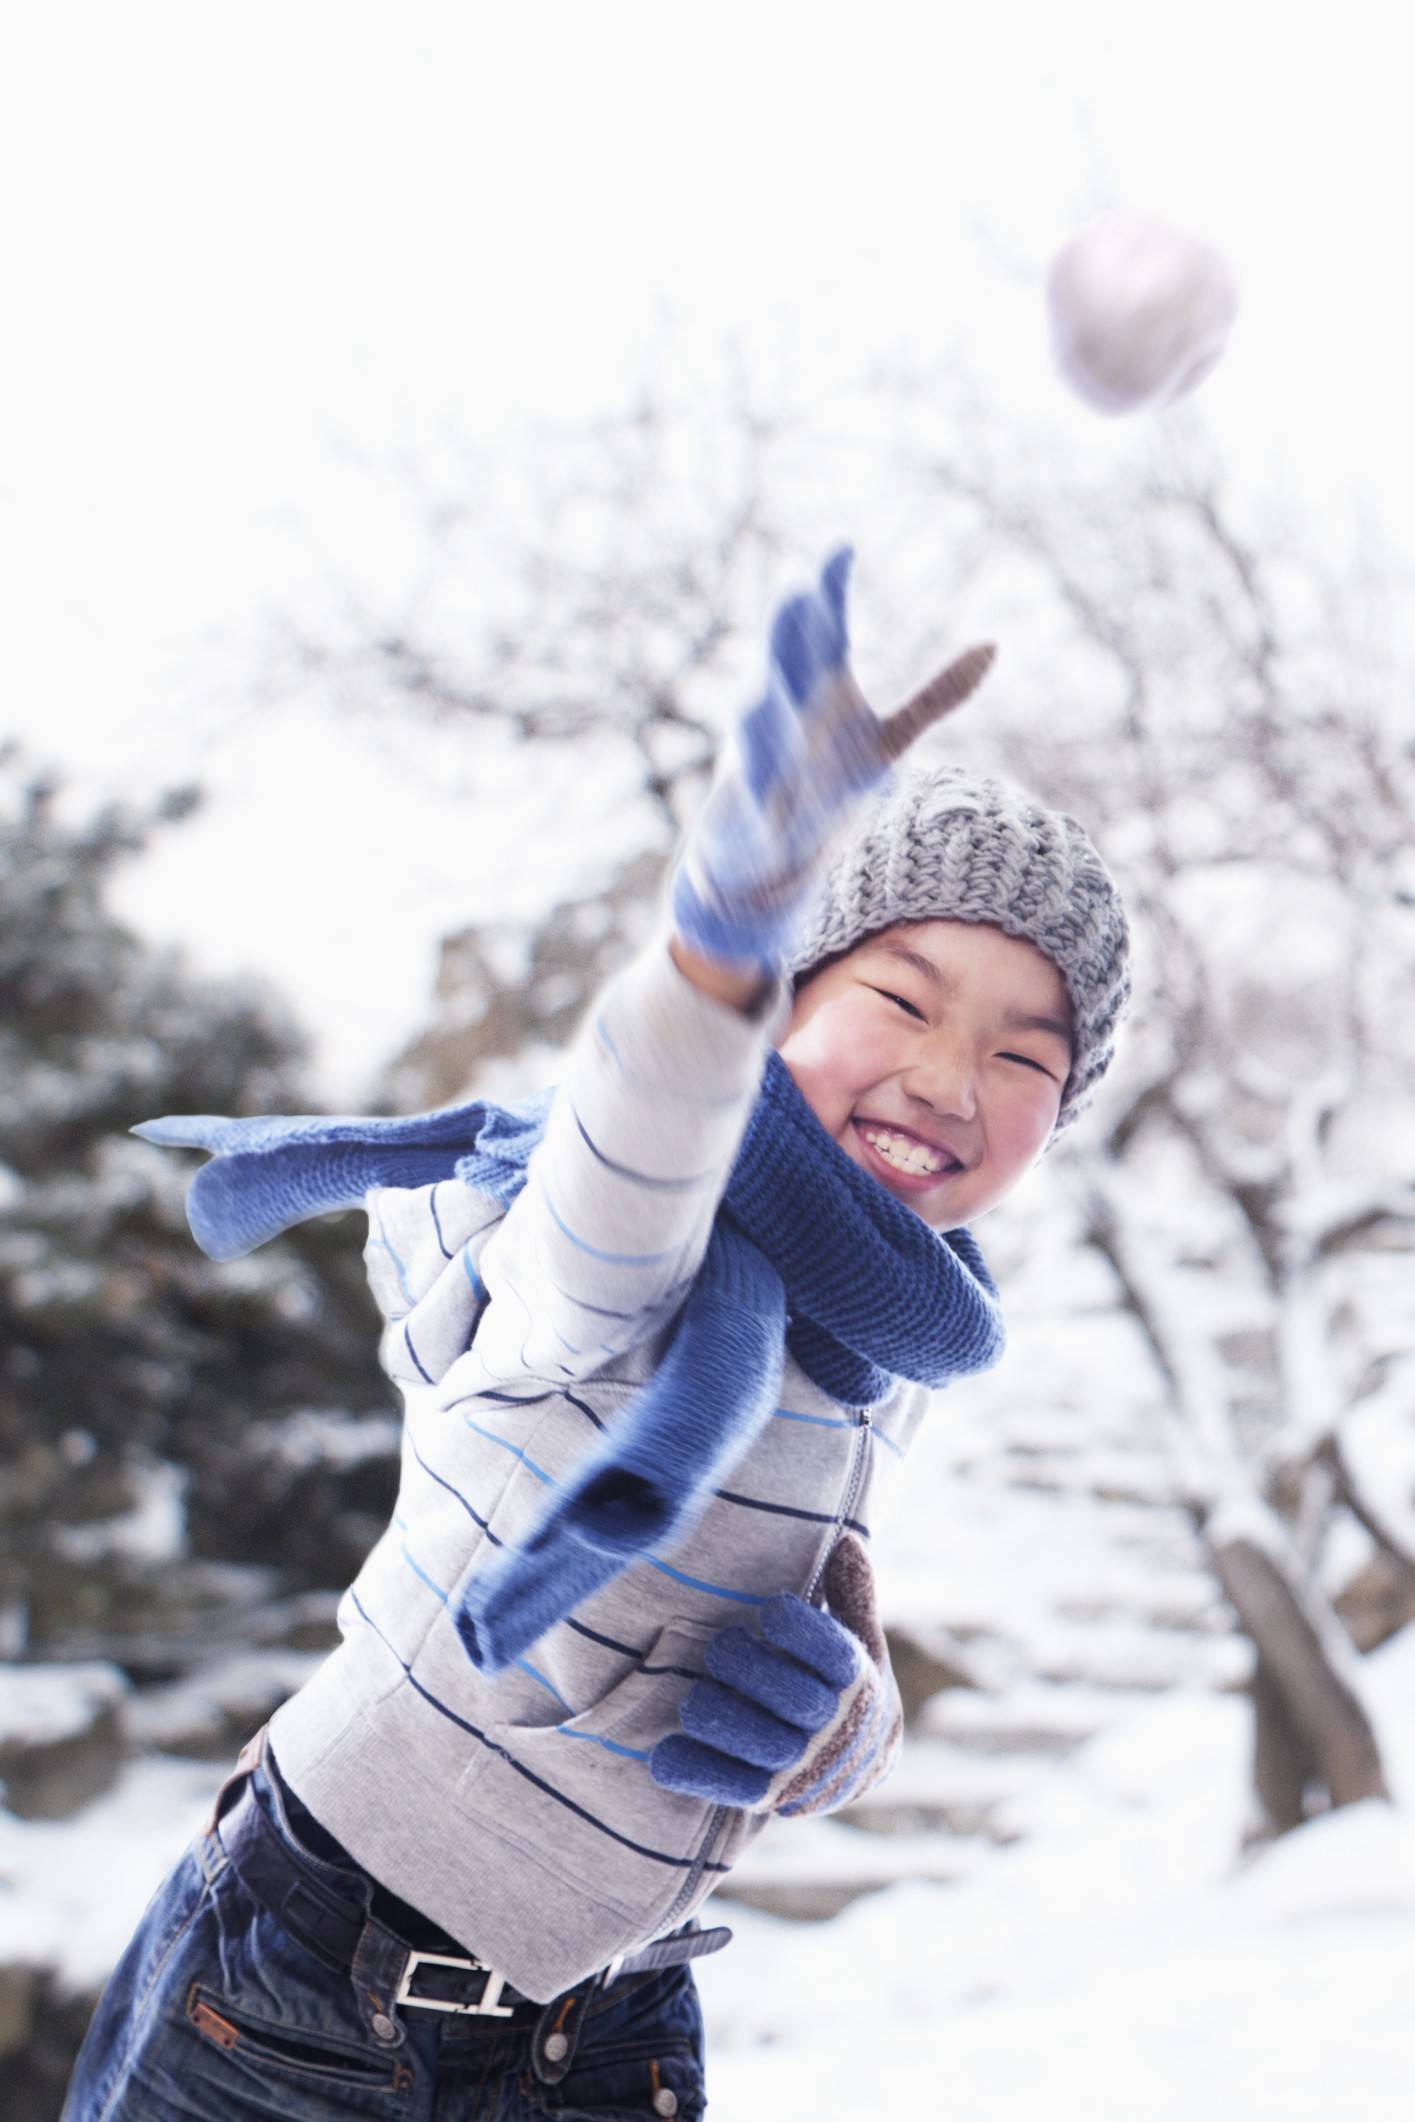 Head to Glen Ellyn Park District's Artic Blast family event to celebrate the winter season.